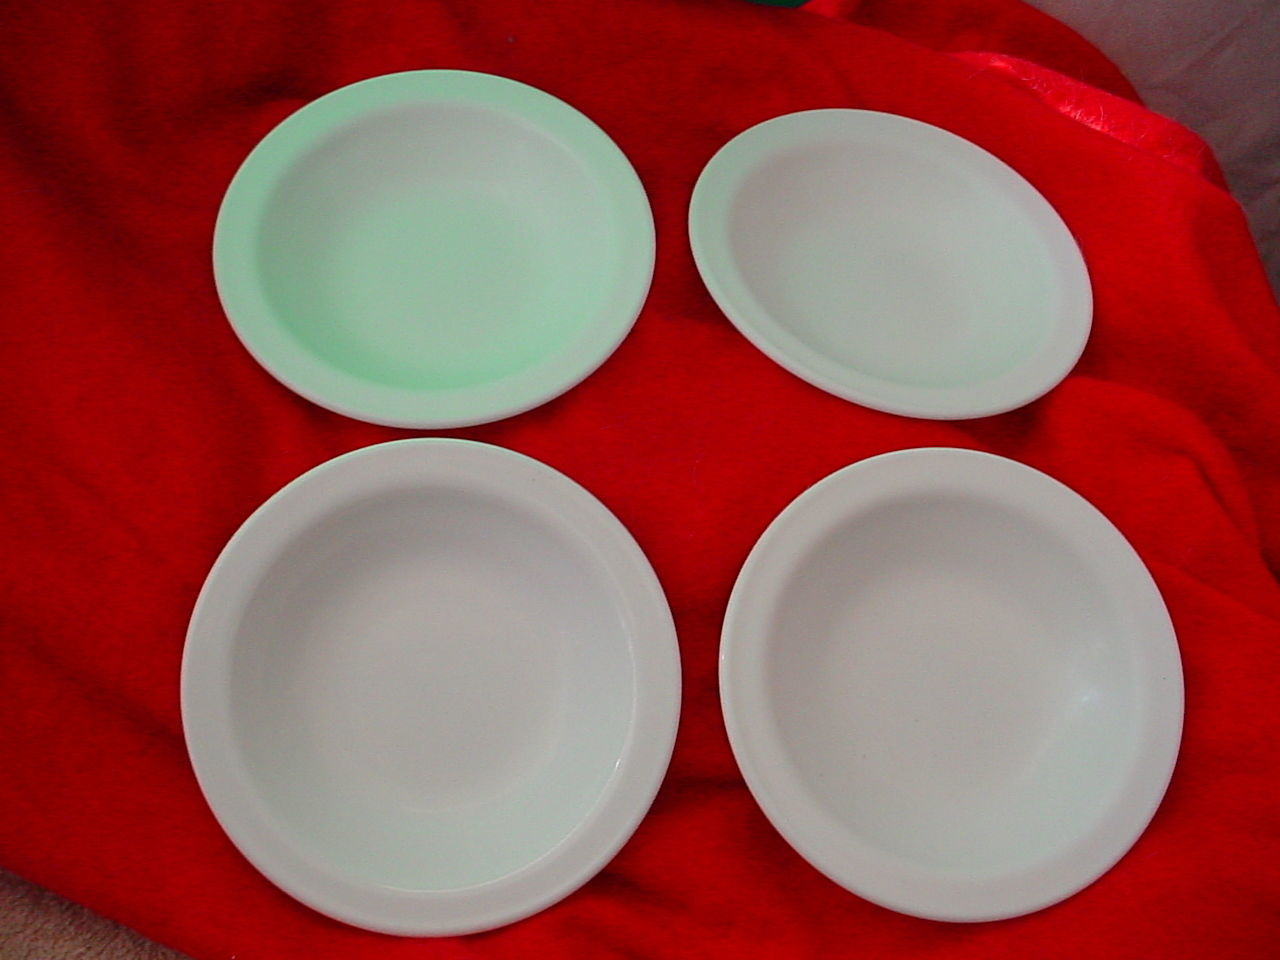 AMWAY BY CORNING RARE HEAVY SAUCE / DESSERT / BERRY BOWLS X 4  FREE USA SHIPPING - $18.69